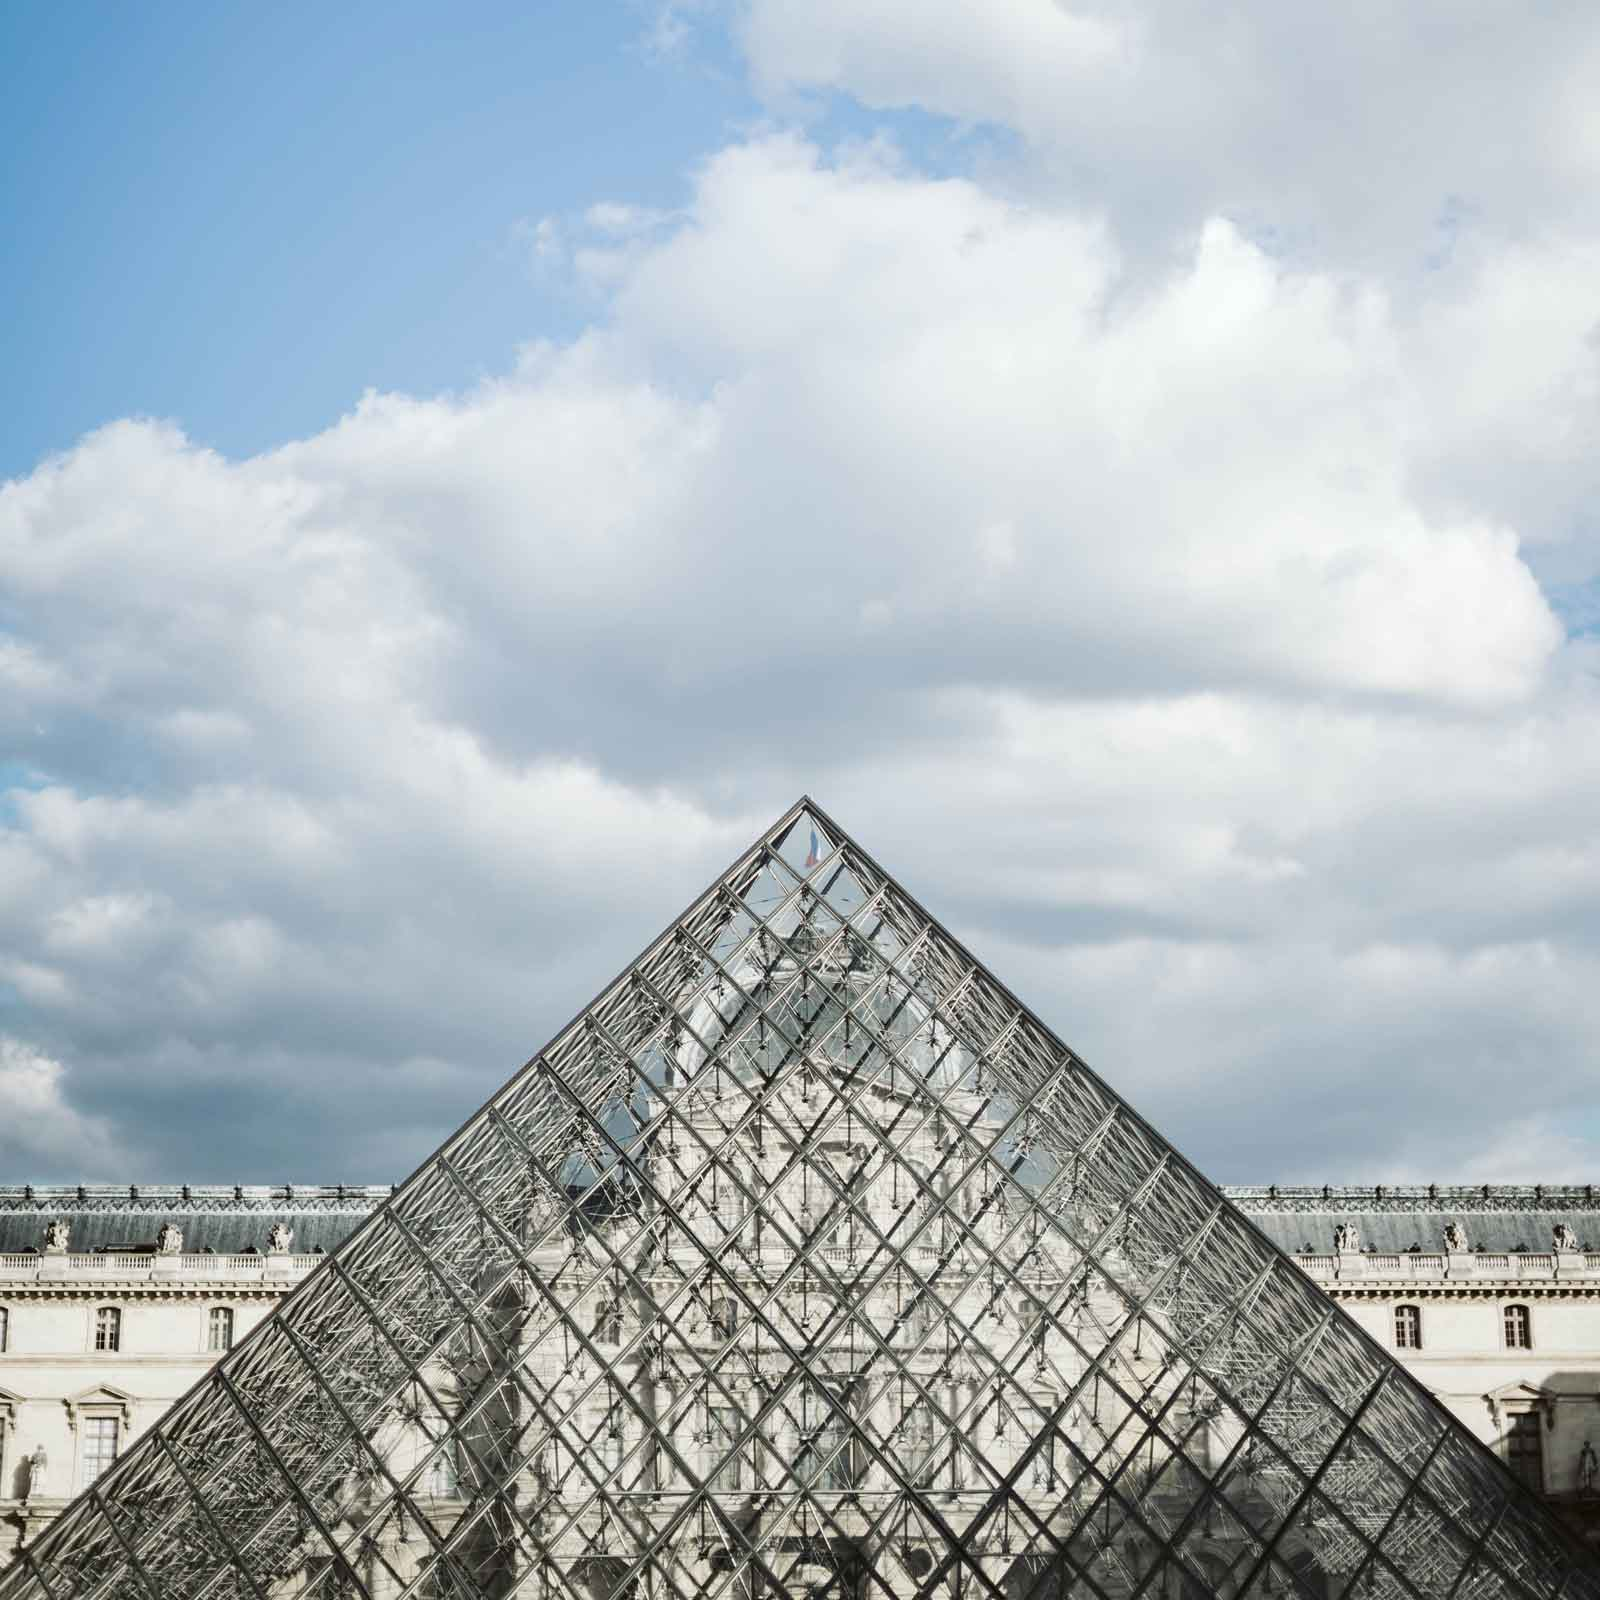 Photo of the glass pyramid outside the Louvre Museum in Paris.